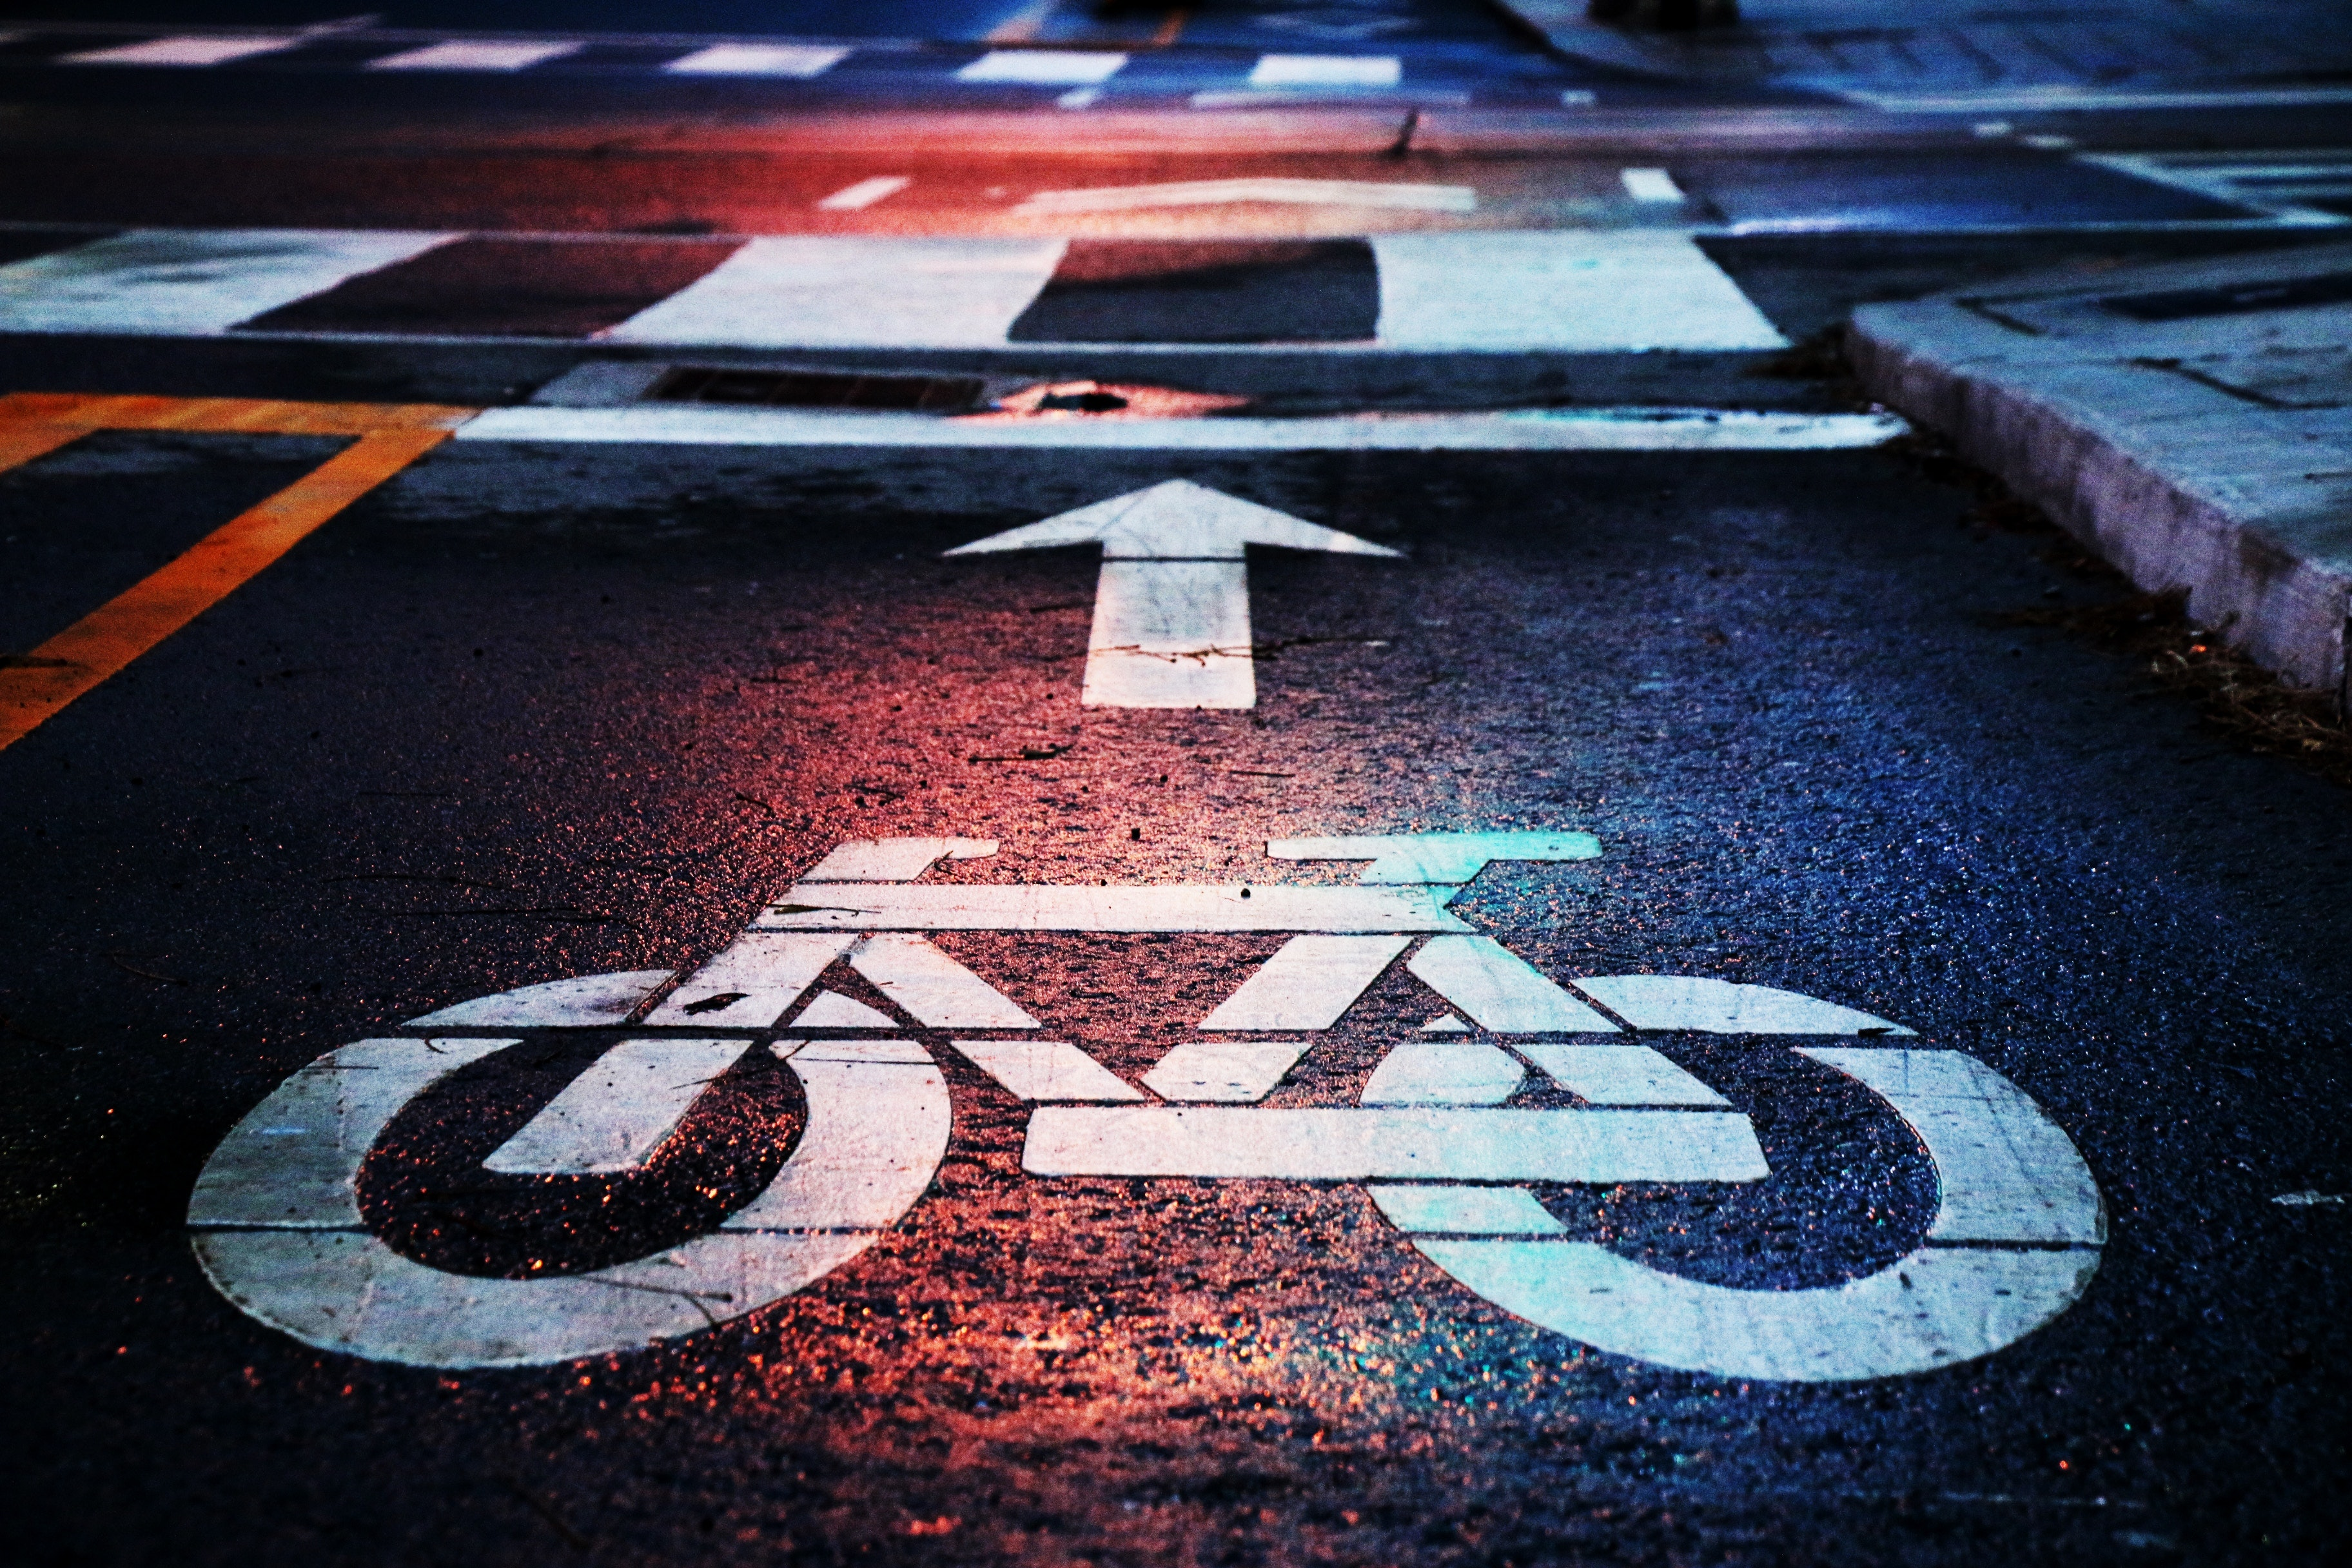 Bicycle road sign. Photo by Andrew Gook/Unsplash